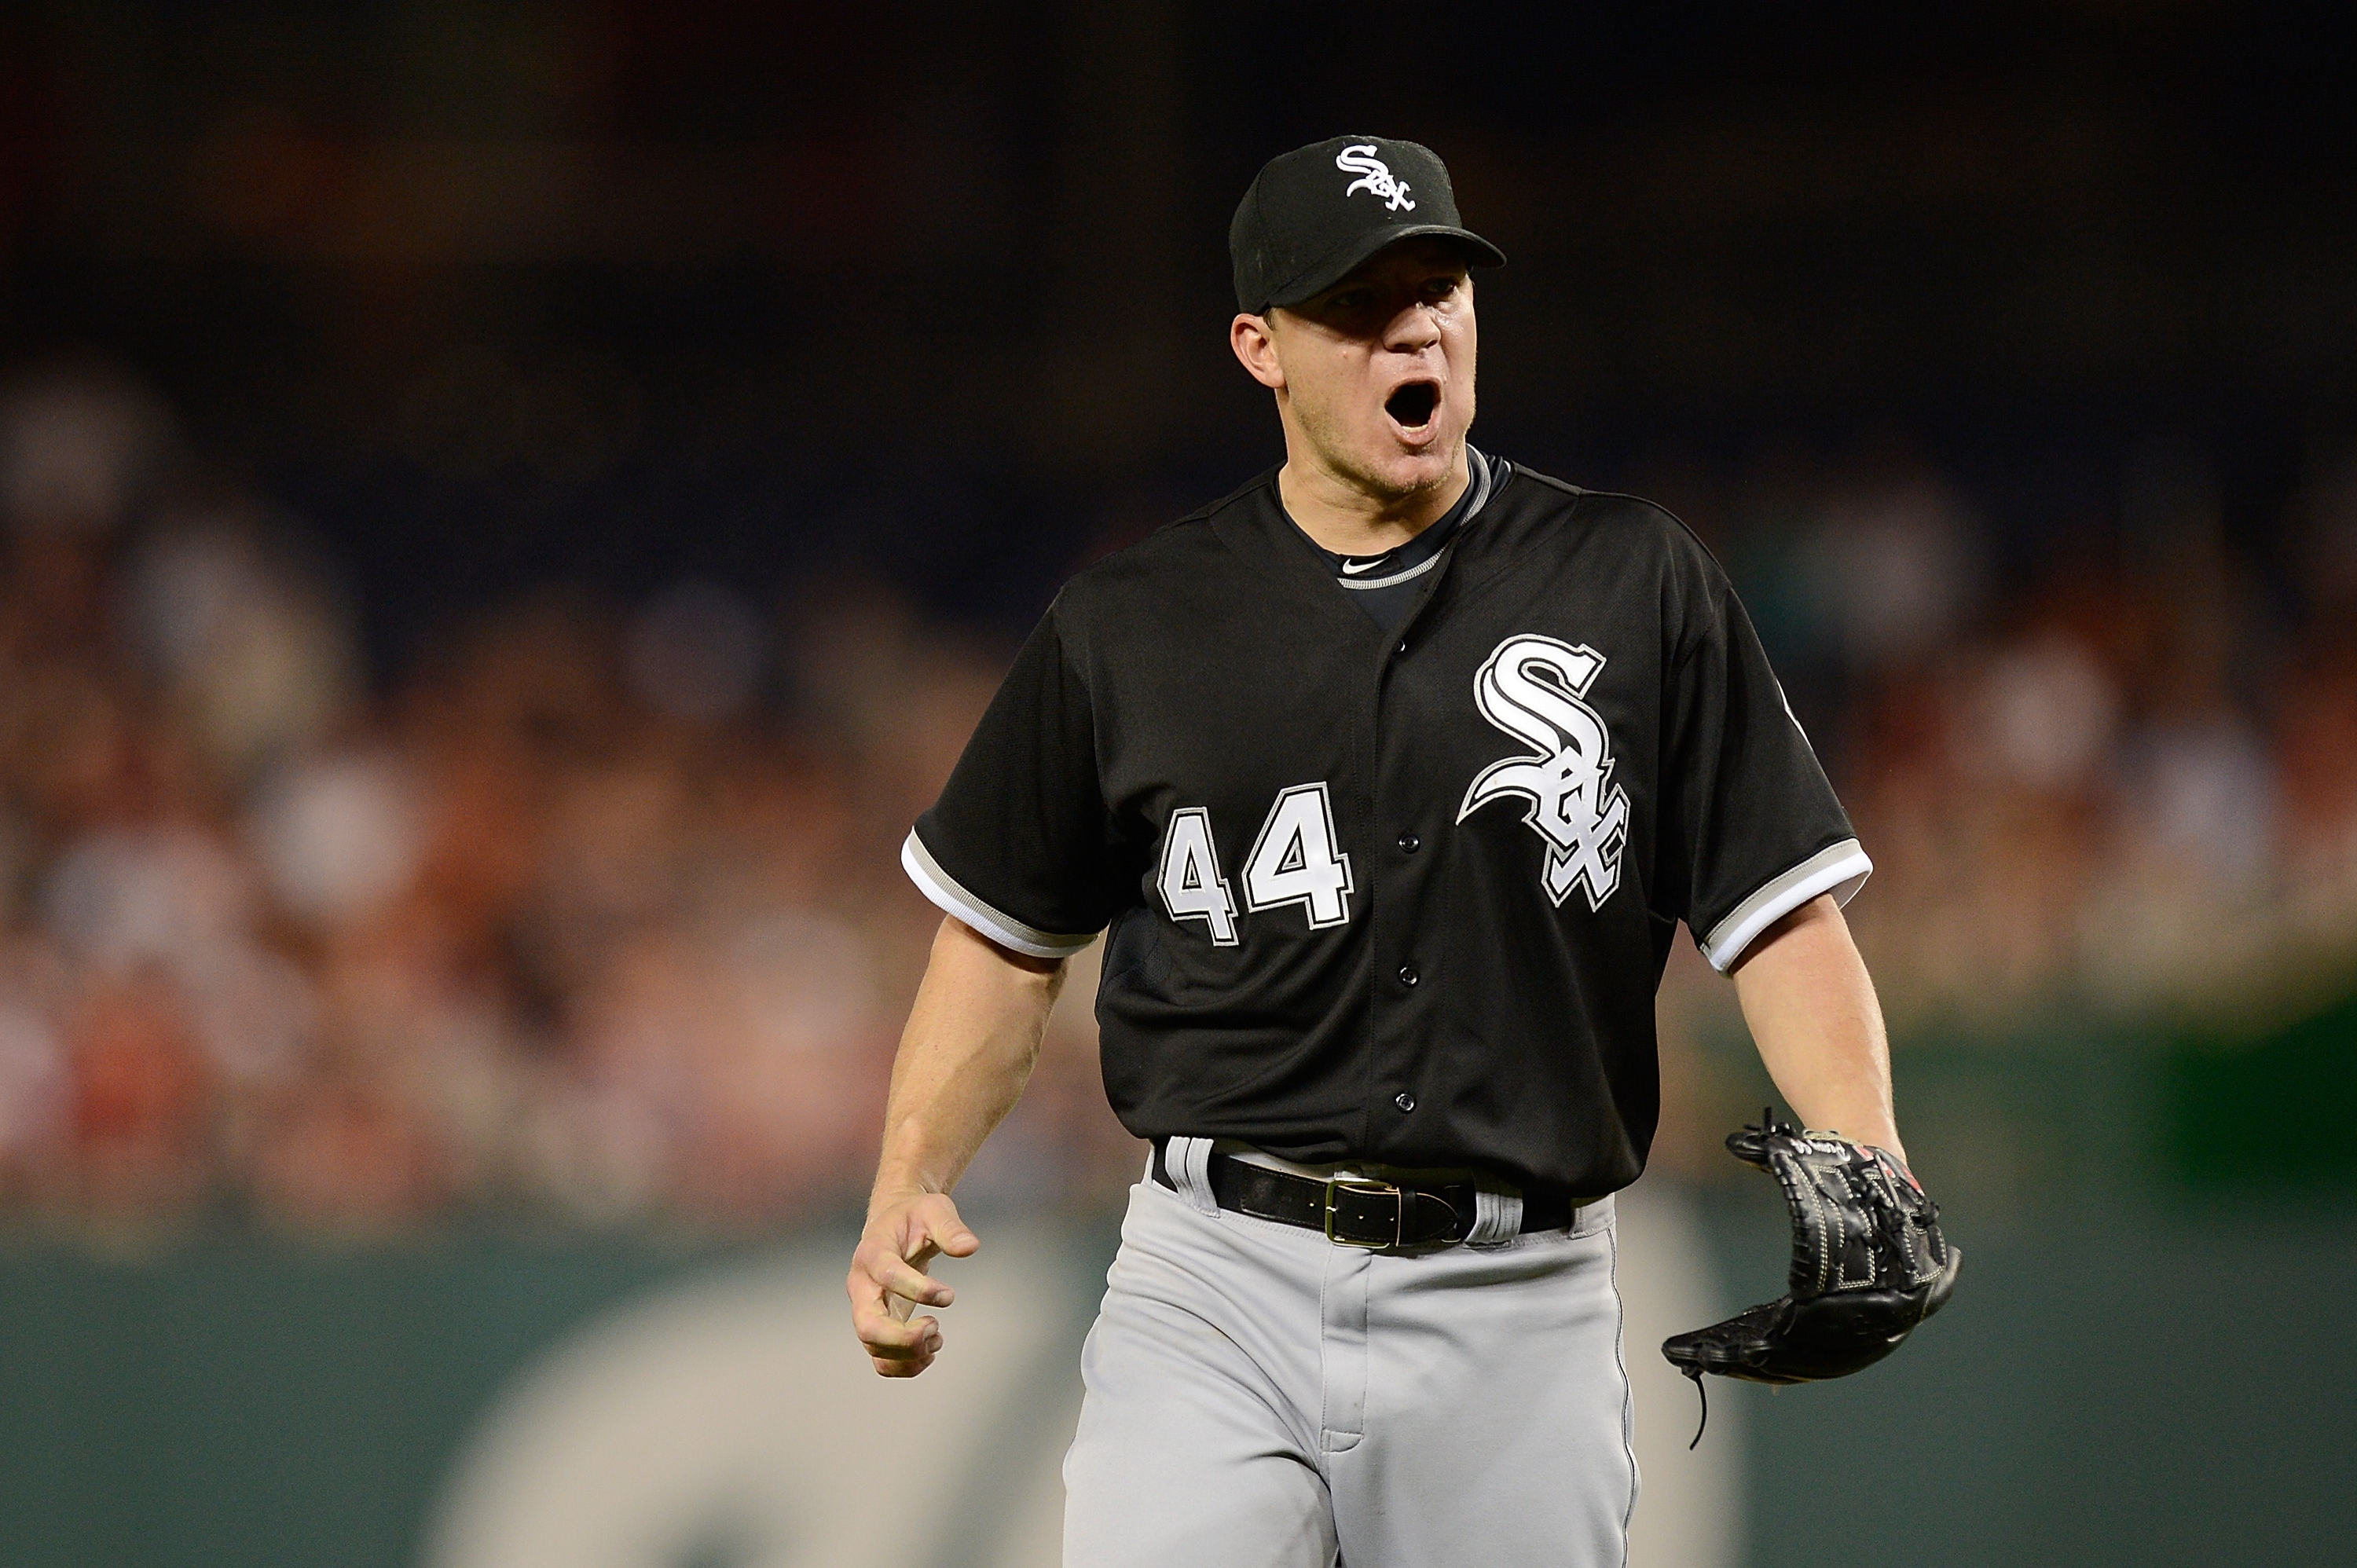 With so few starters available, the White Sox could get quite a haul for Jake Peavy. (Getty Images)